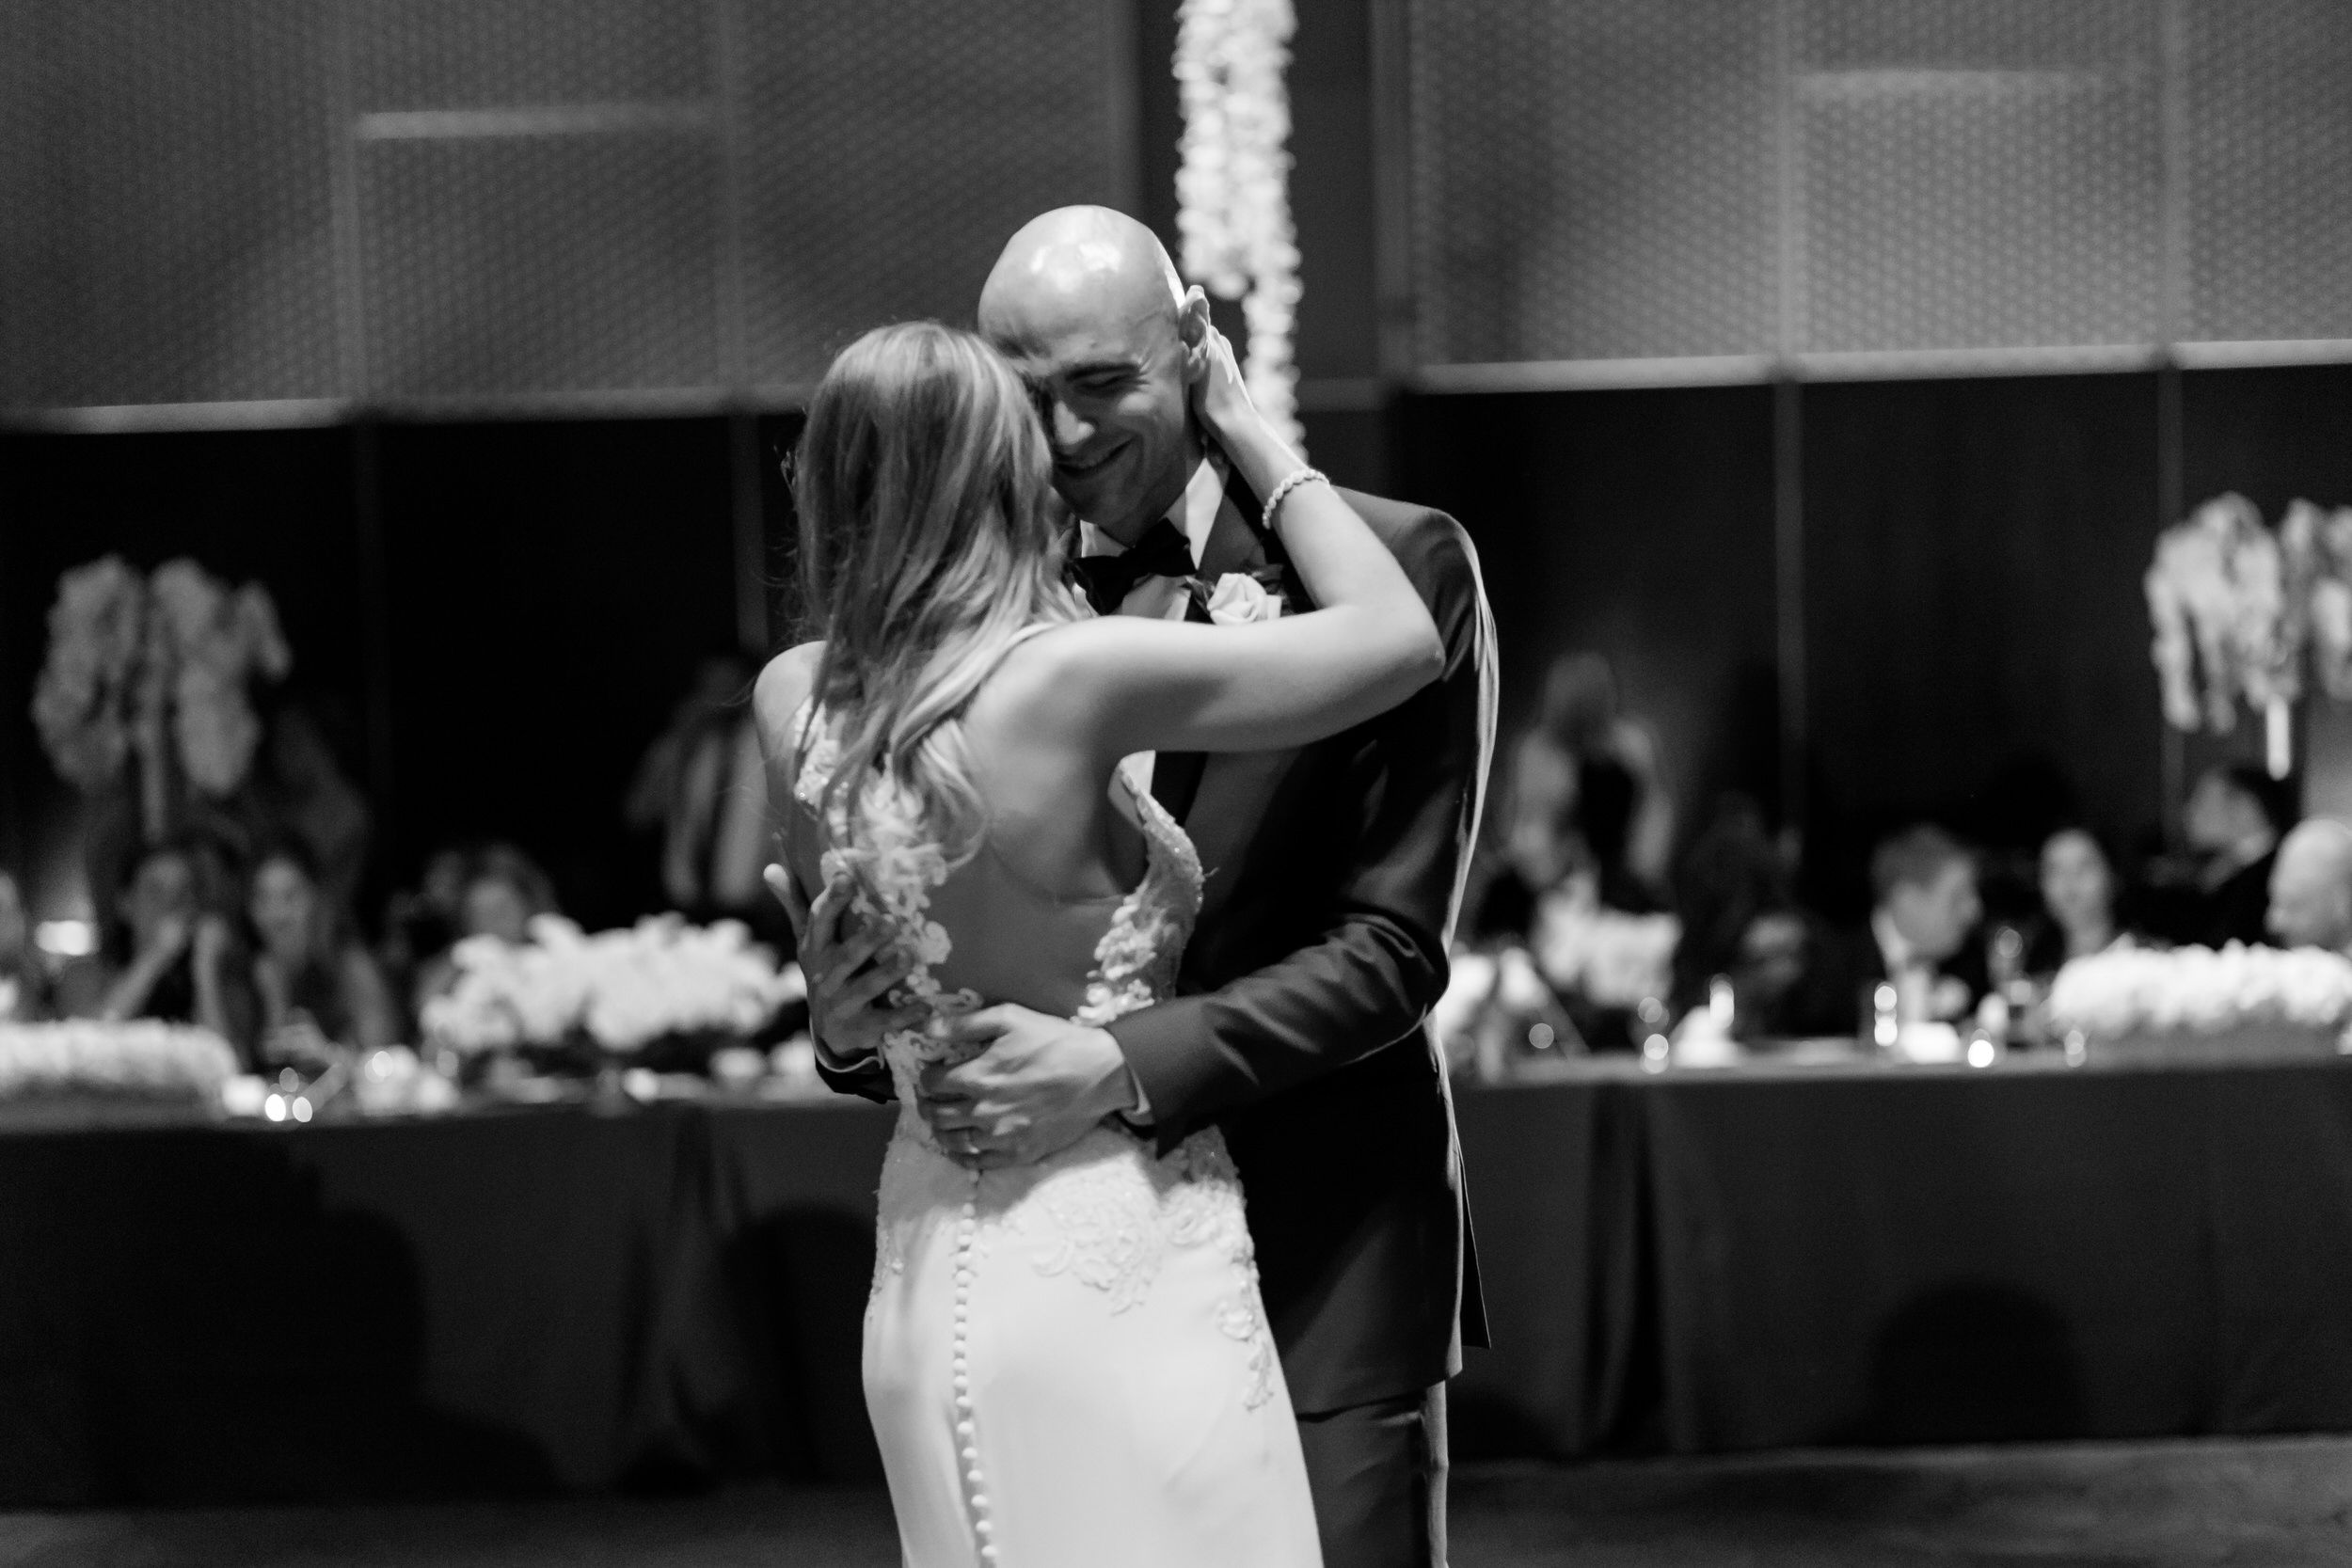 salem_convention_center_wedding_stark_photography_029